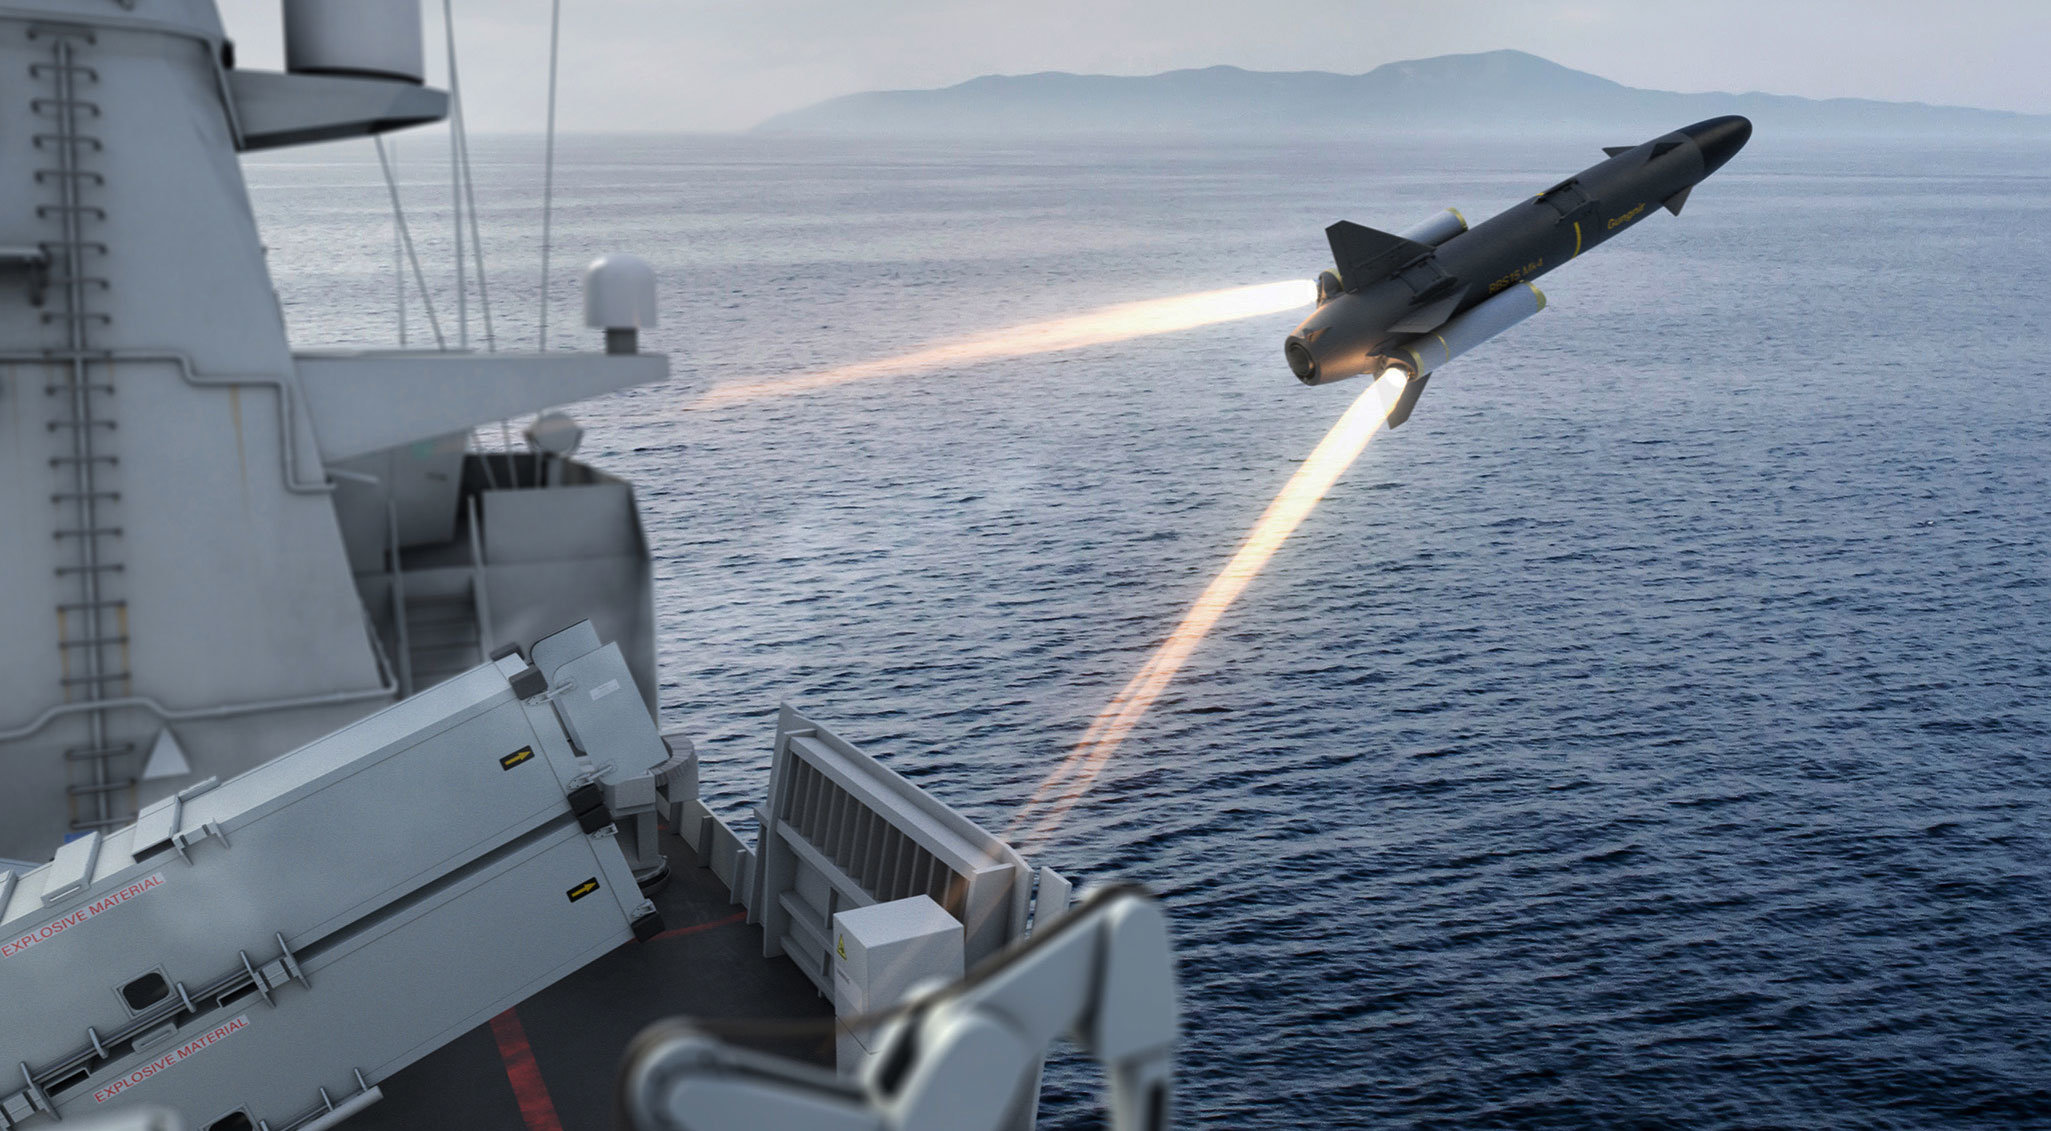 More details emerge about plan to replace Royal Navy Harpoon anti-ship missile